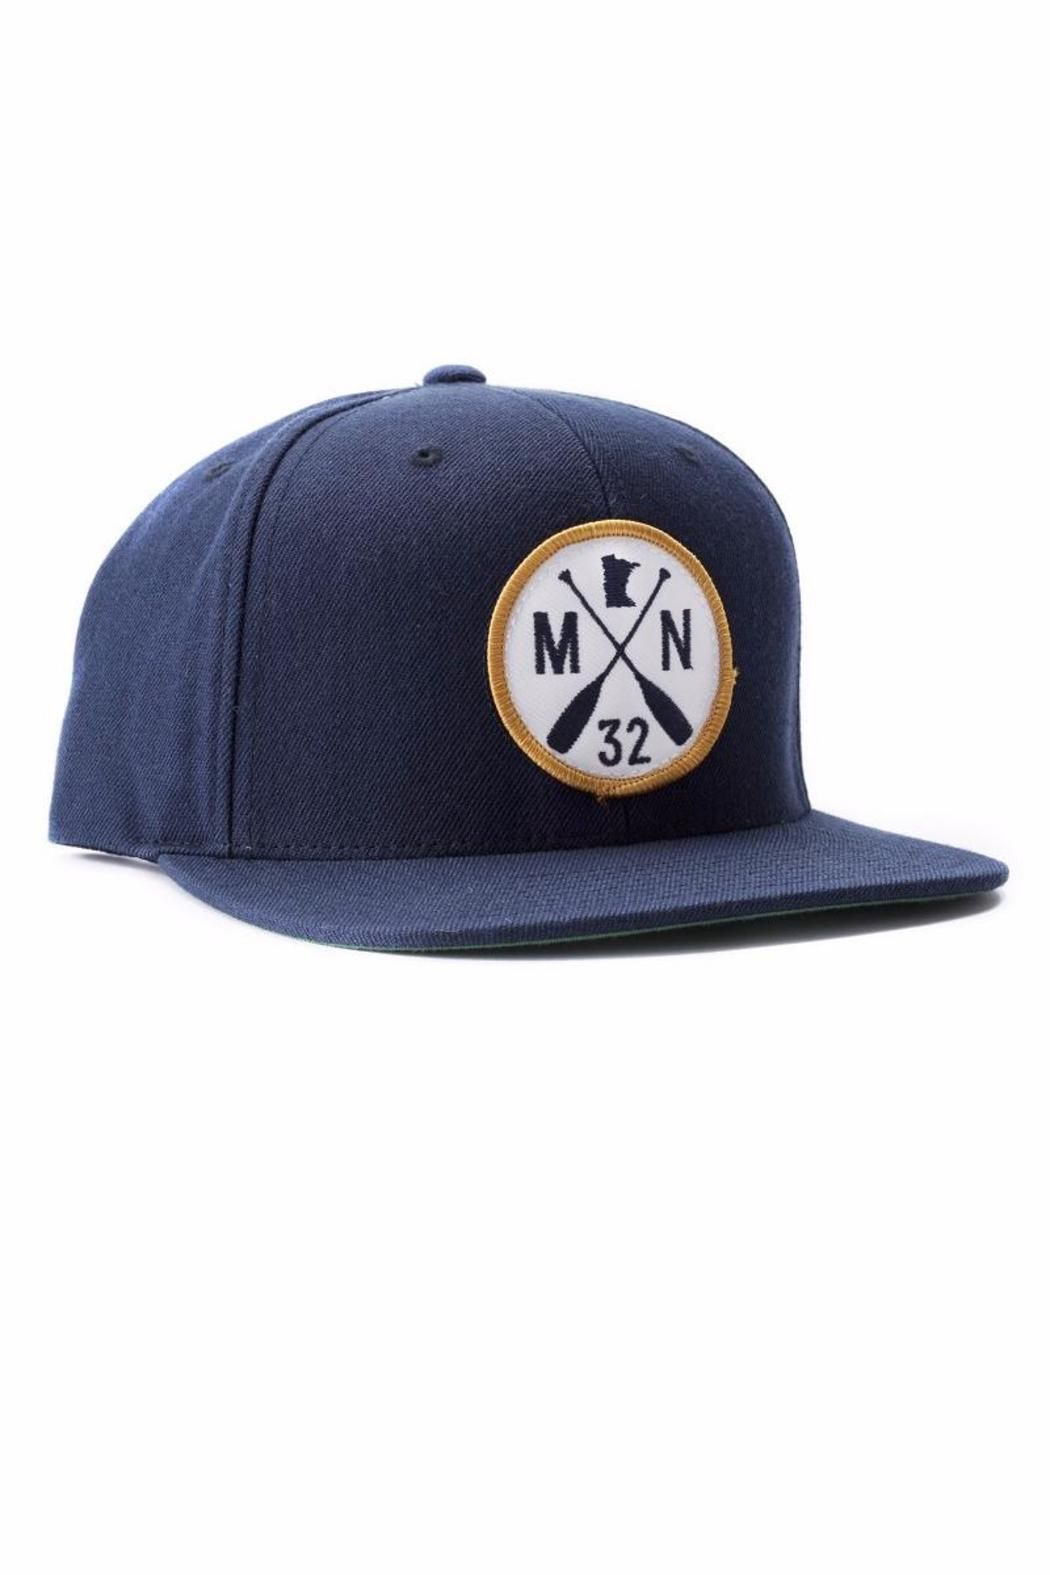 Adjustable baseball cap with Minnesota 32 Paddle logo.   The Paige Cap by Sota Clothing Co.. Accessories - Hats Minneapolis, Minnesota